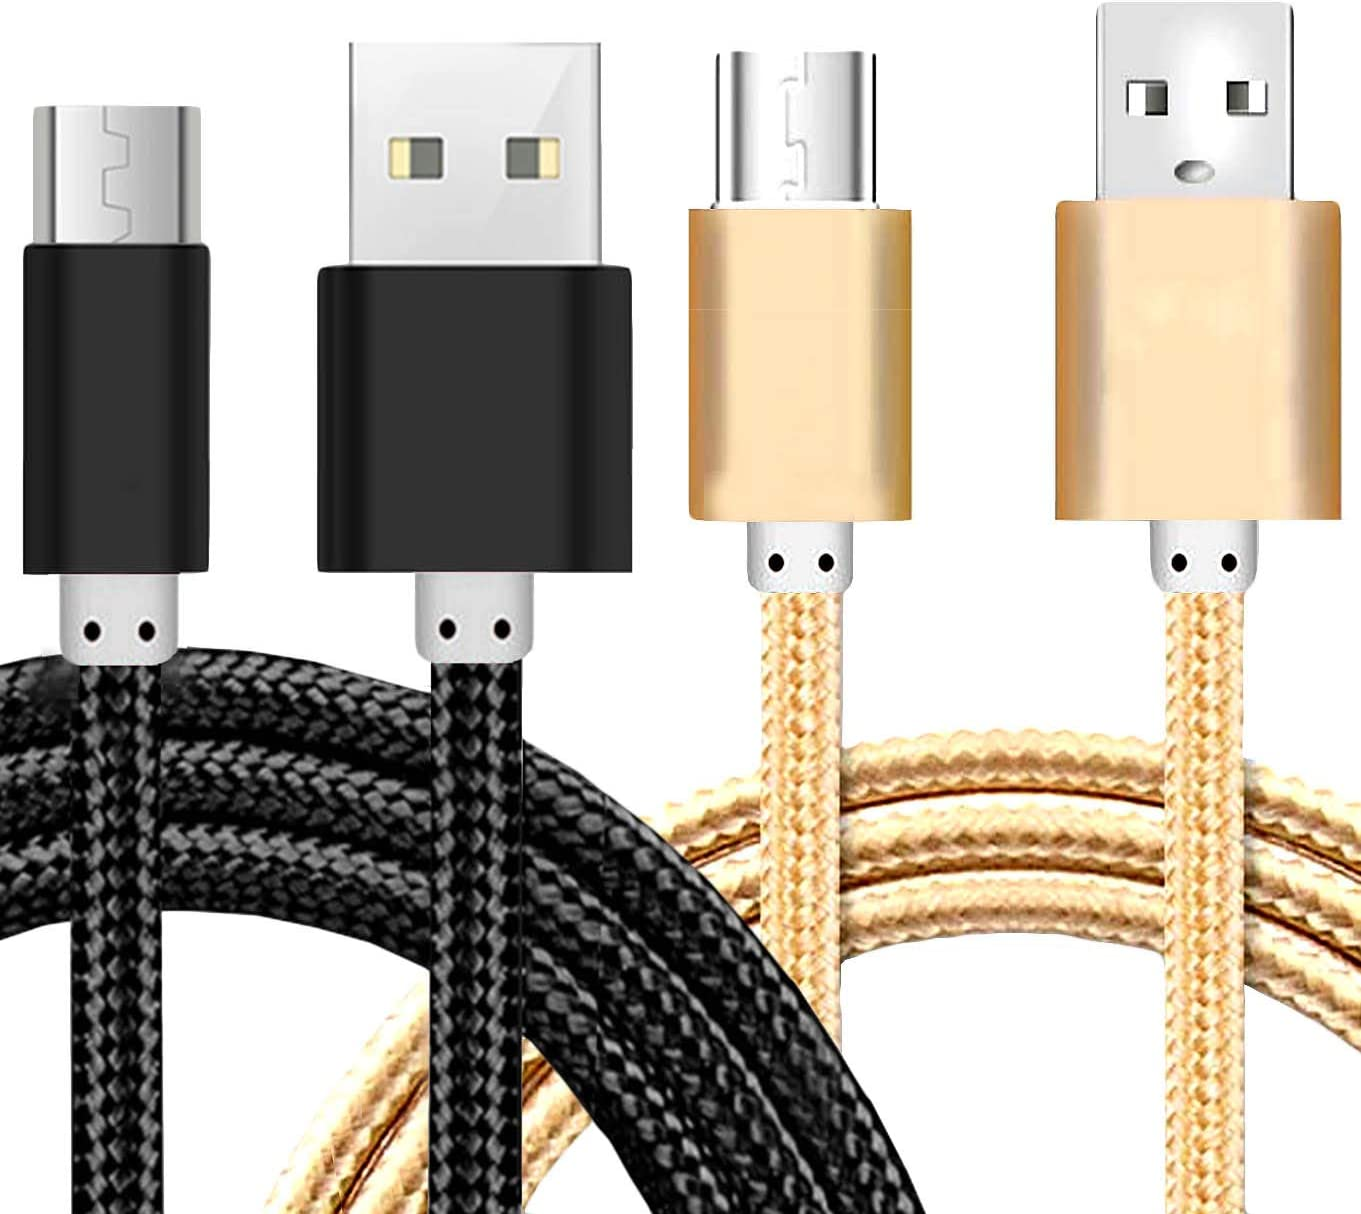 5 Ft Micro USB Fast Charging Cord Charging Nylon Braided Replacement High Speed Data Sync Charger Compatible with Kindle Touch 2011 Fire Keyboard-Black+rosGold+Silver iEugen Micro USB Cable 3Pack